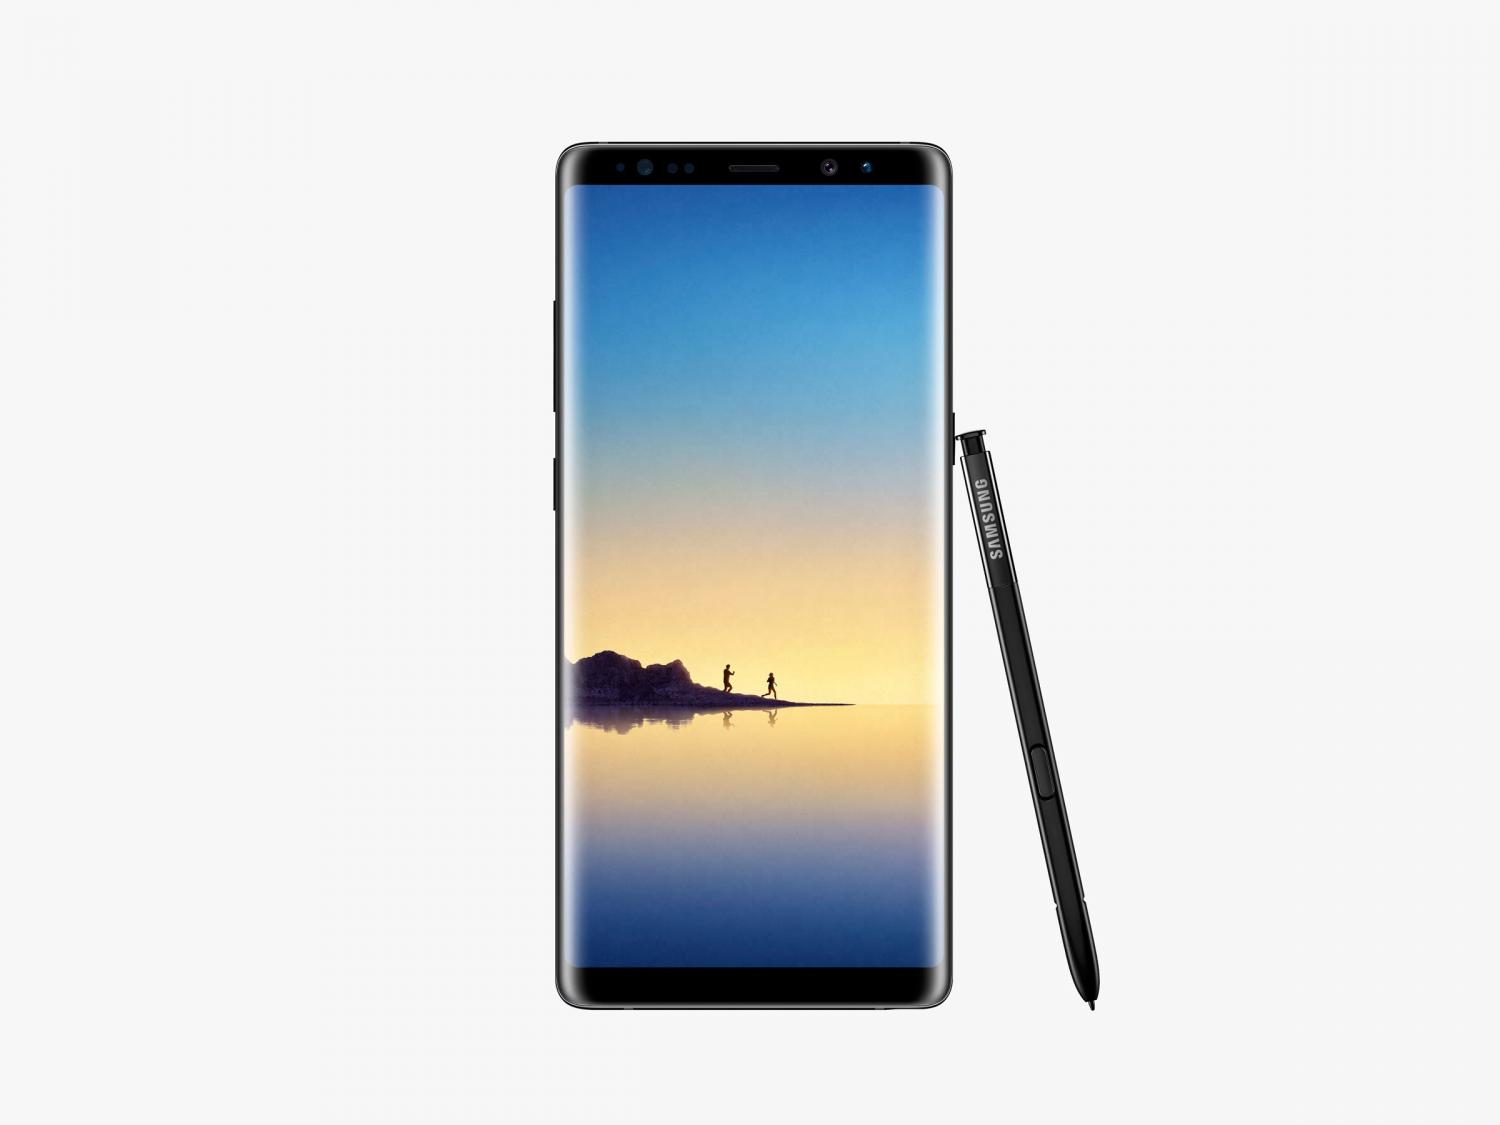 Samsung Galaxy Note 8 Launched: Everything You Need To Know